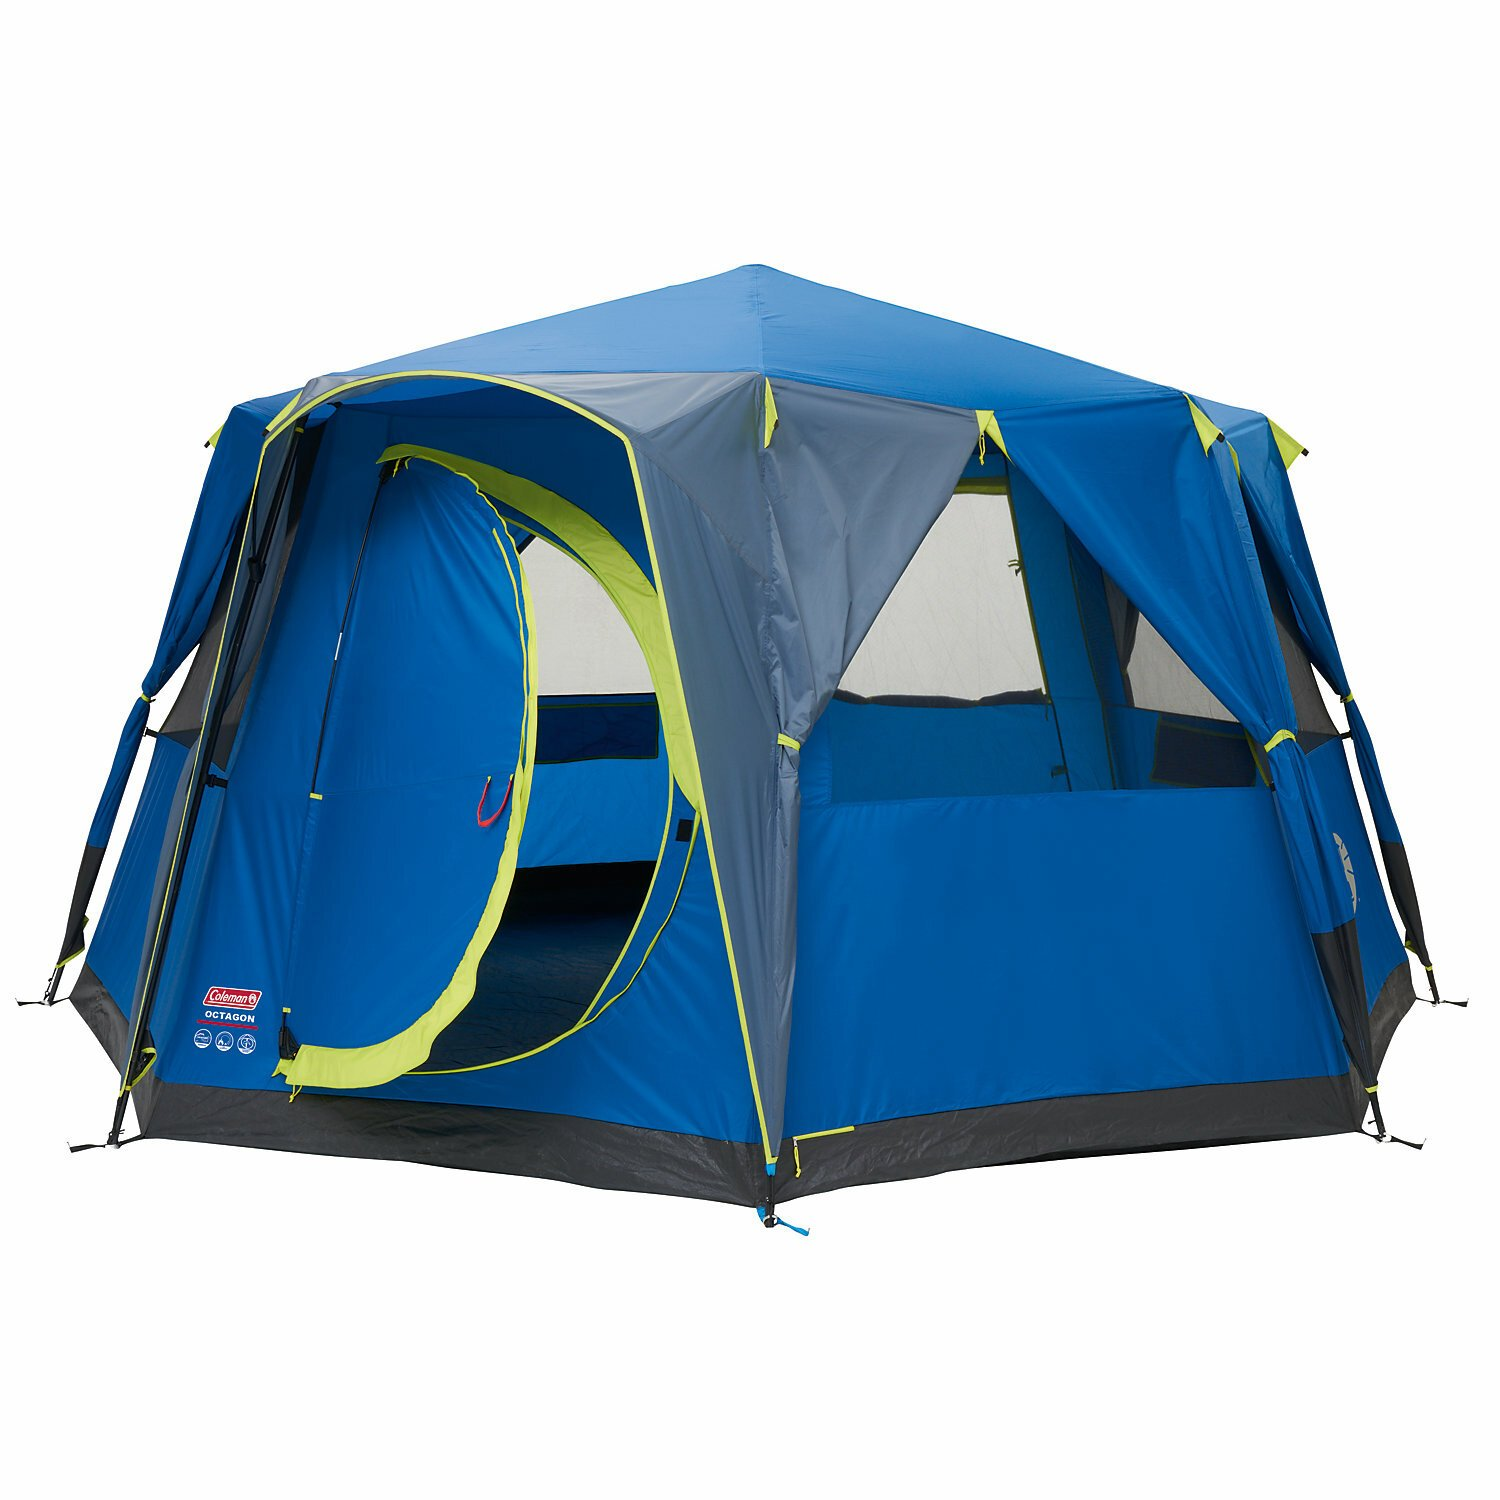 Coleman 8 Man 1 Room Octagon Dome Camping Tent